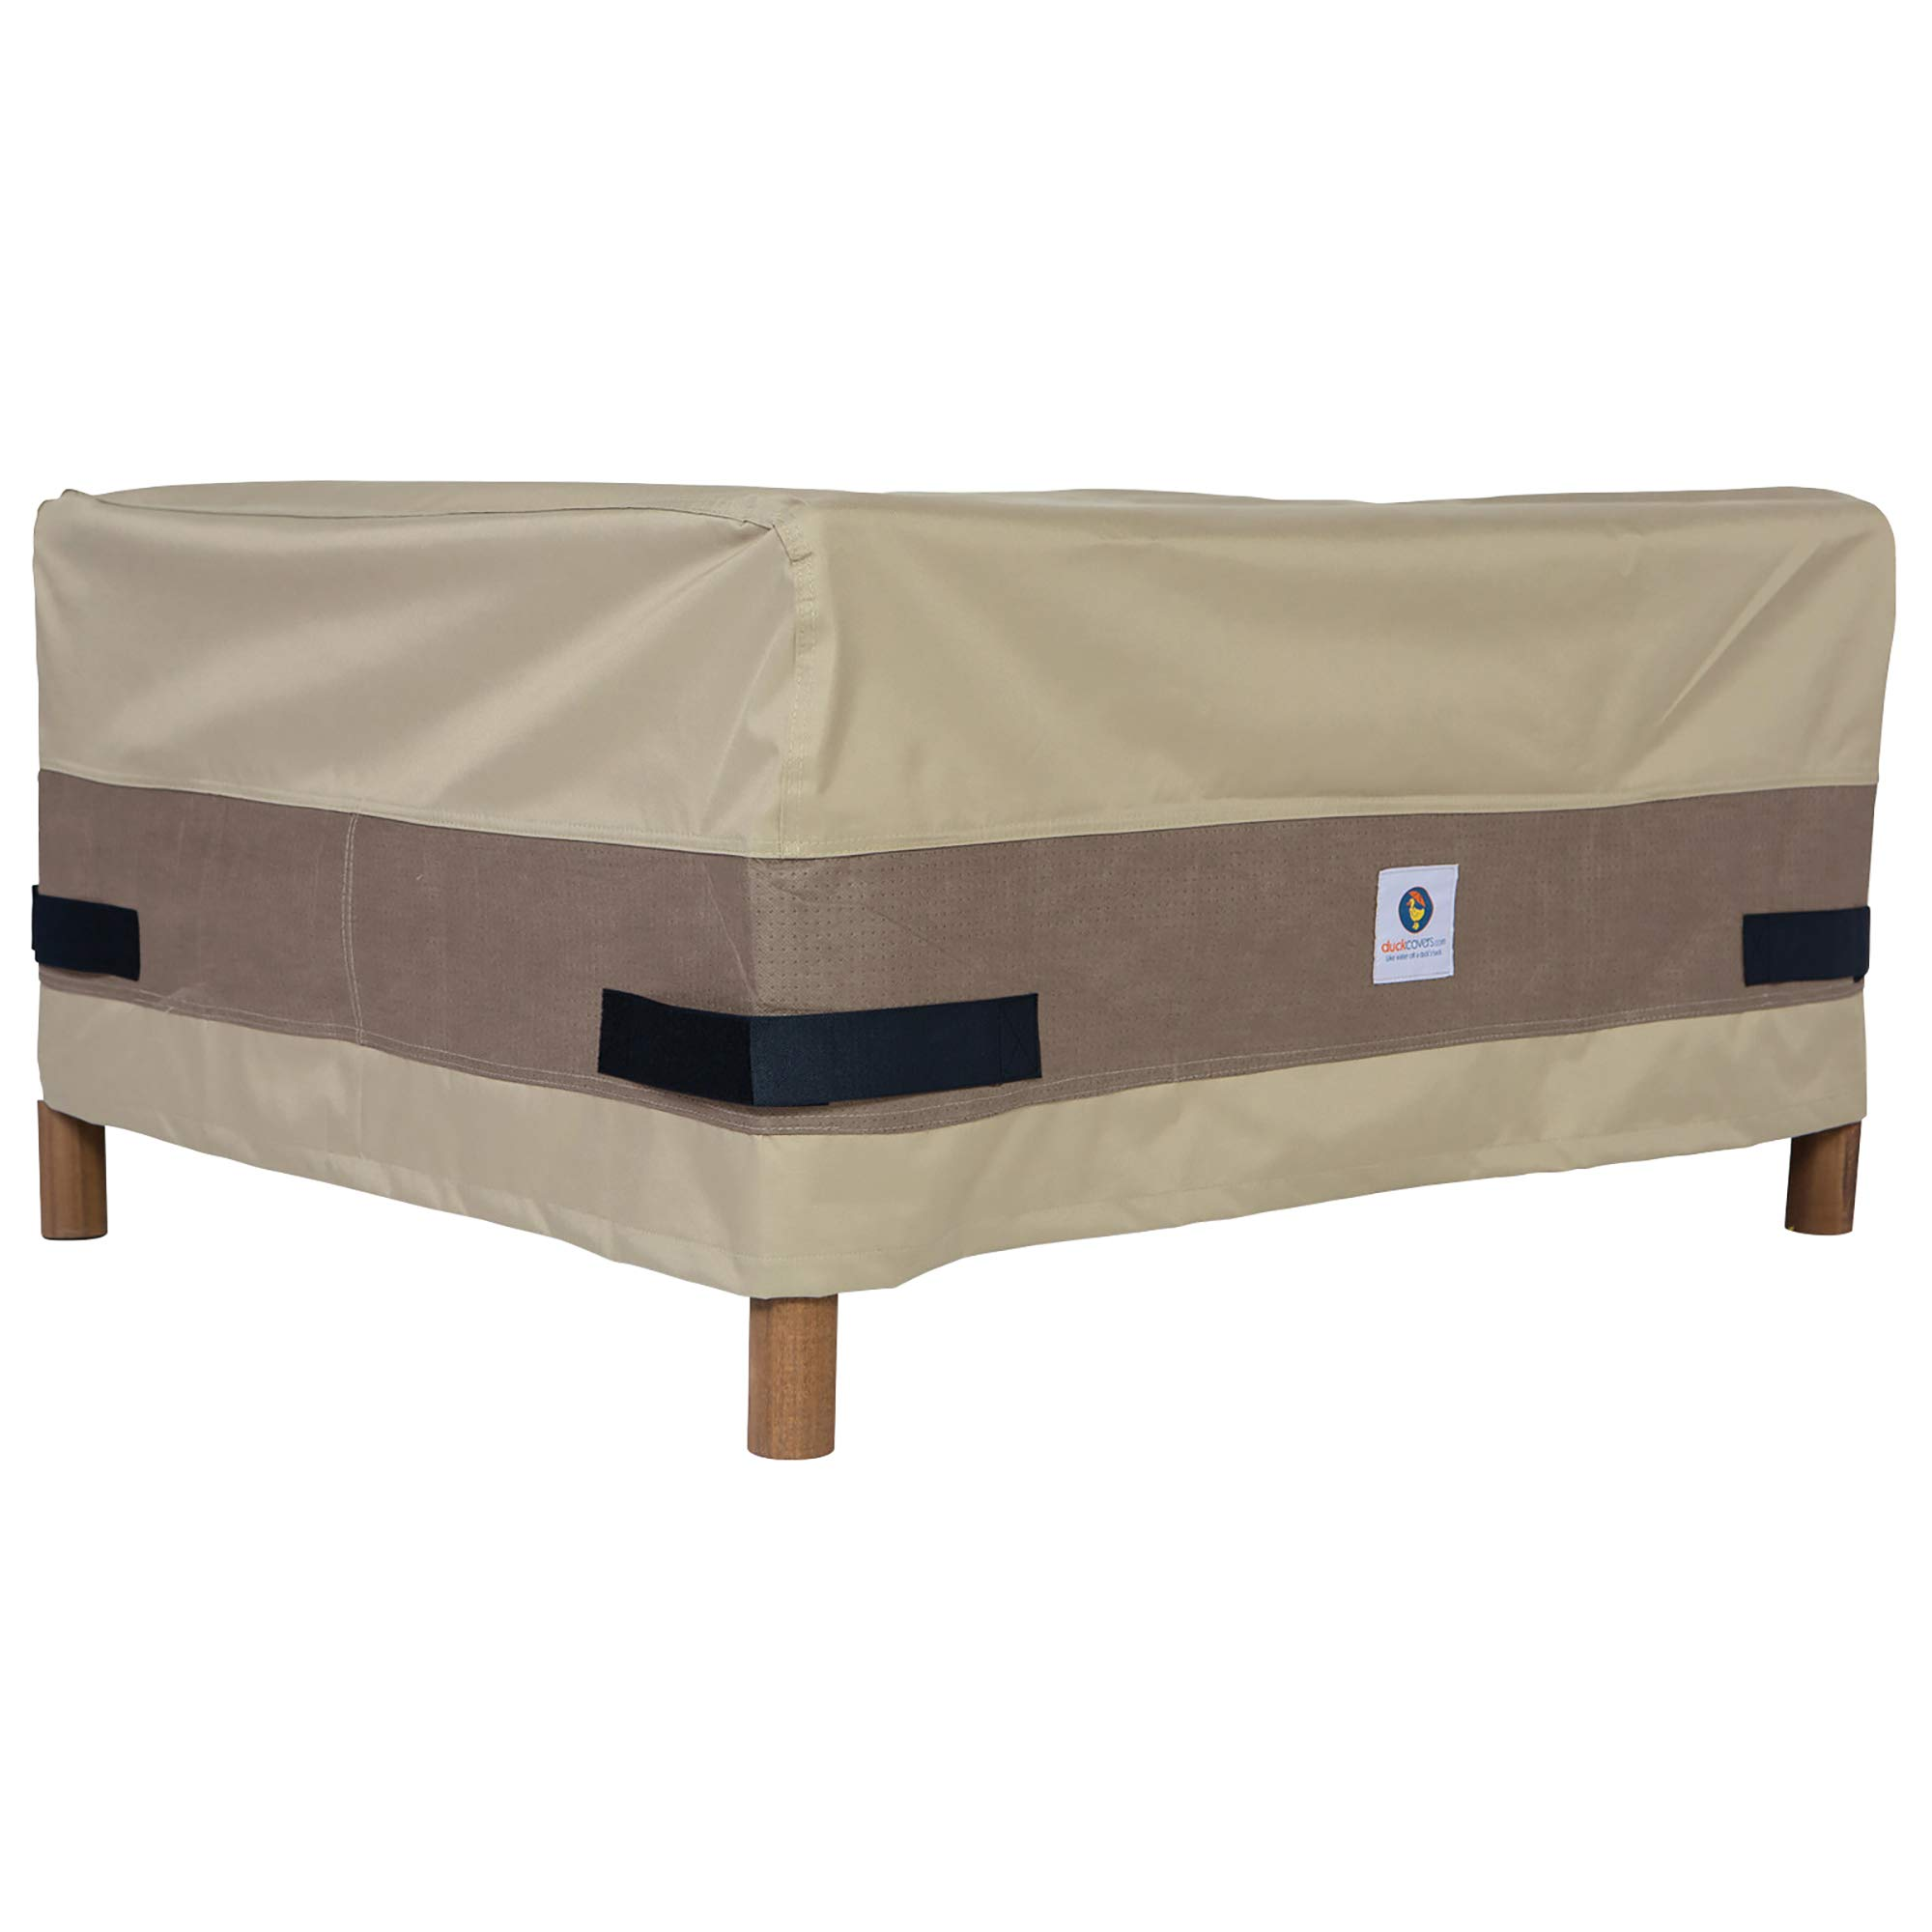 Amazon com duck covers elegant rectangular patio ottoman side table cover fits outdoor rectangular patio ottoman side tables 52 in